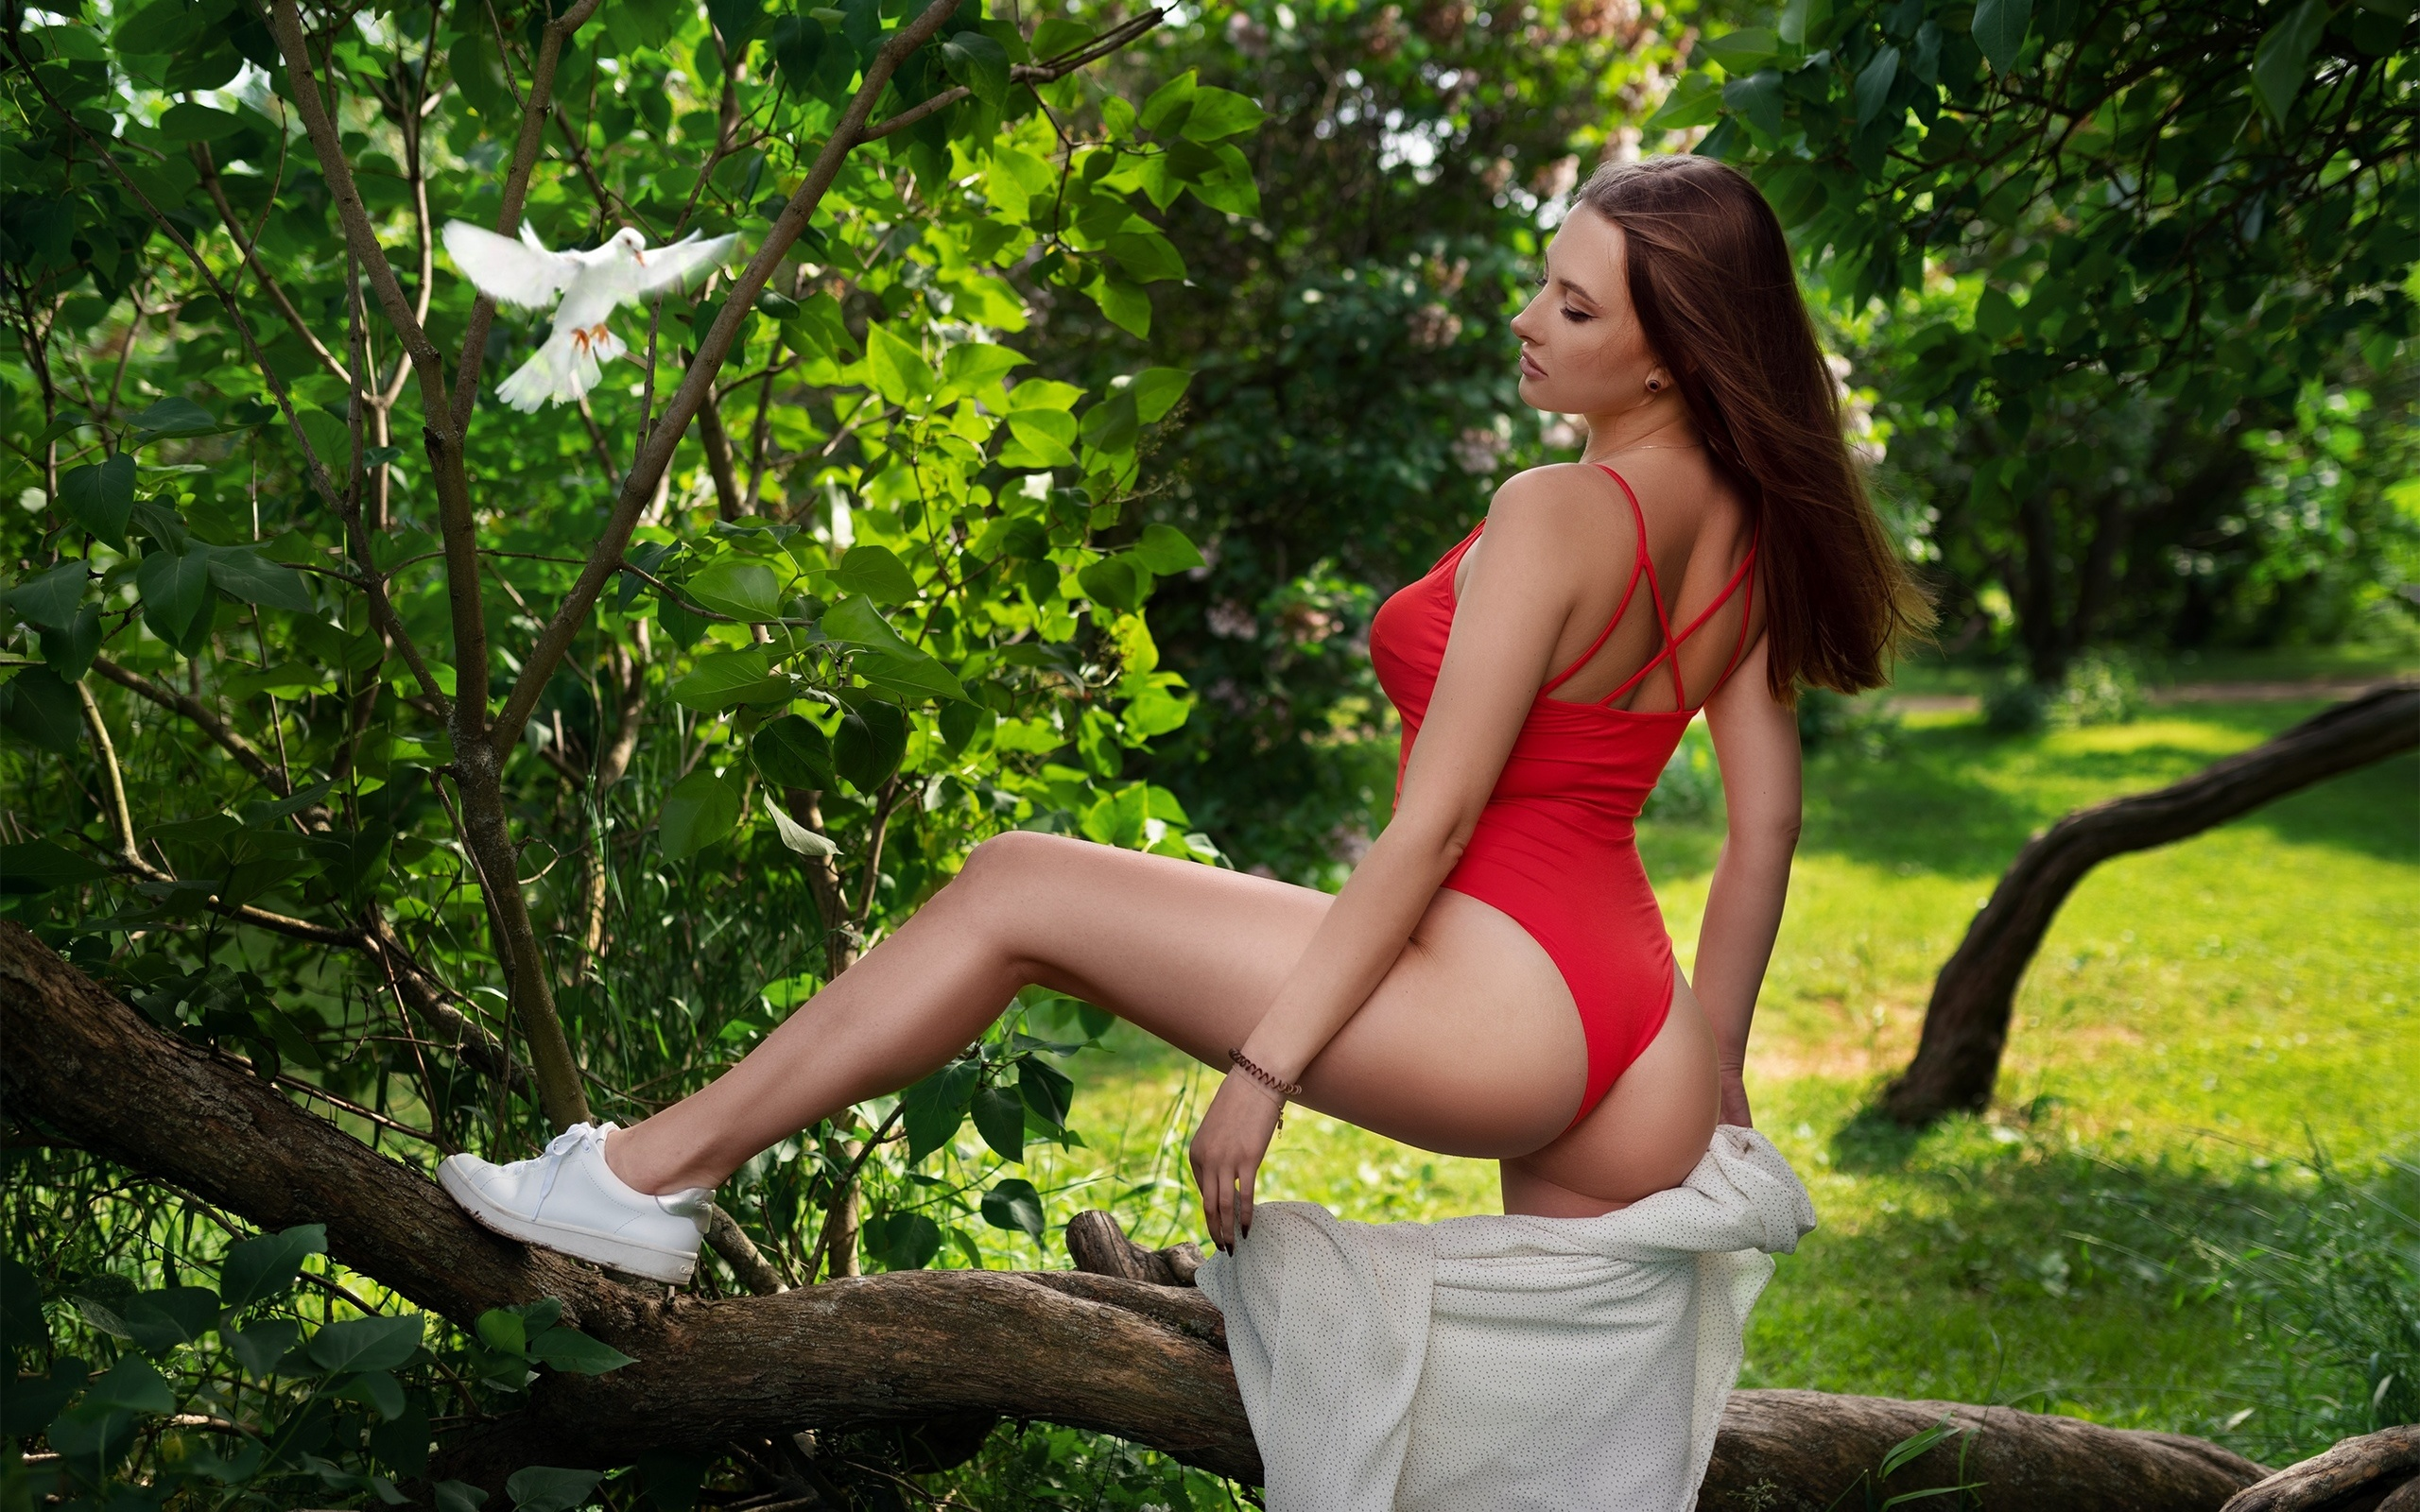 women, ass, trees, sneakers, women outdoors, grass, one-piece swimsuit, brunette, eyeliner, dove